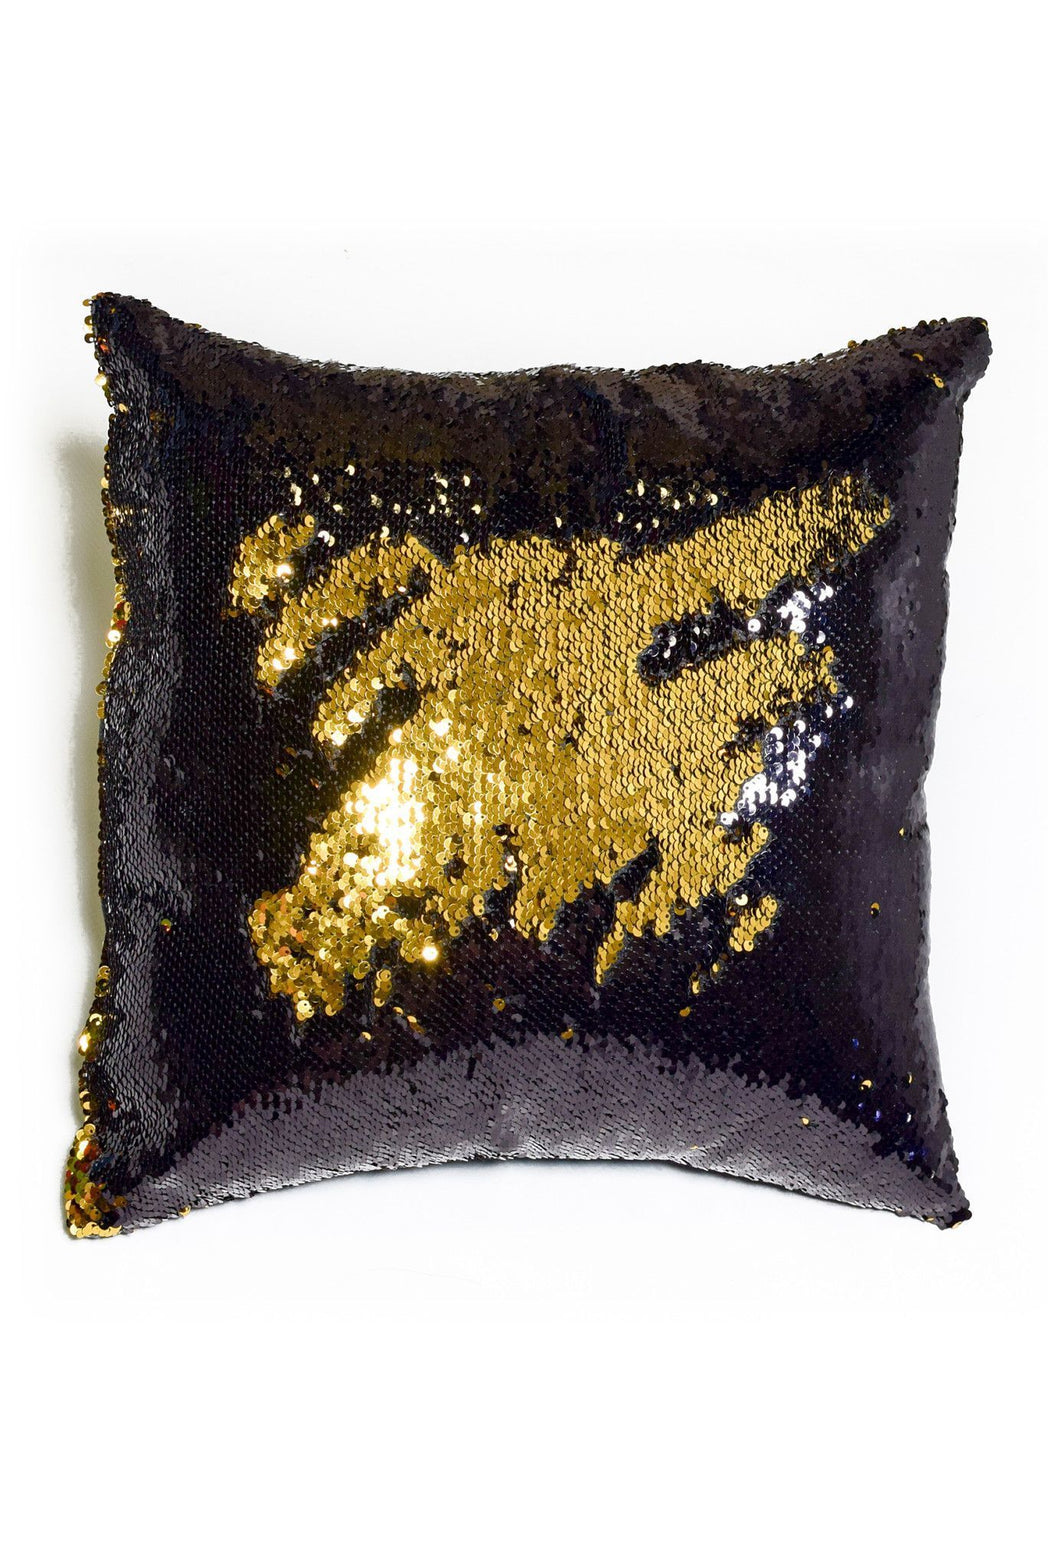 cushions gold decorative x abstract throw product toss silk wool contemporary sofa composition embroidered kashmir pillow cover orange red pillows kandinsky